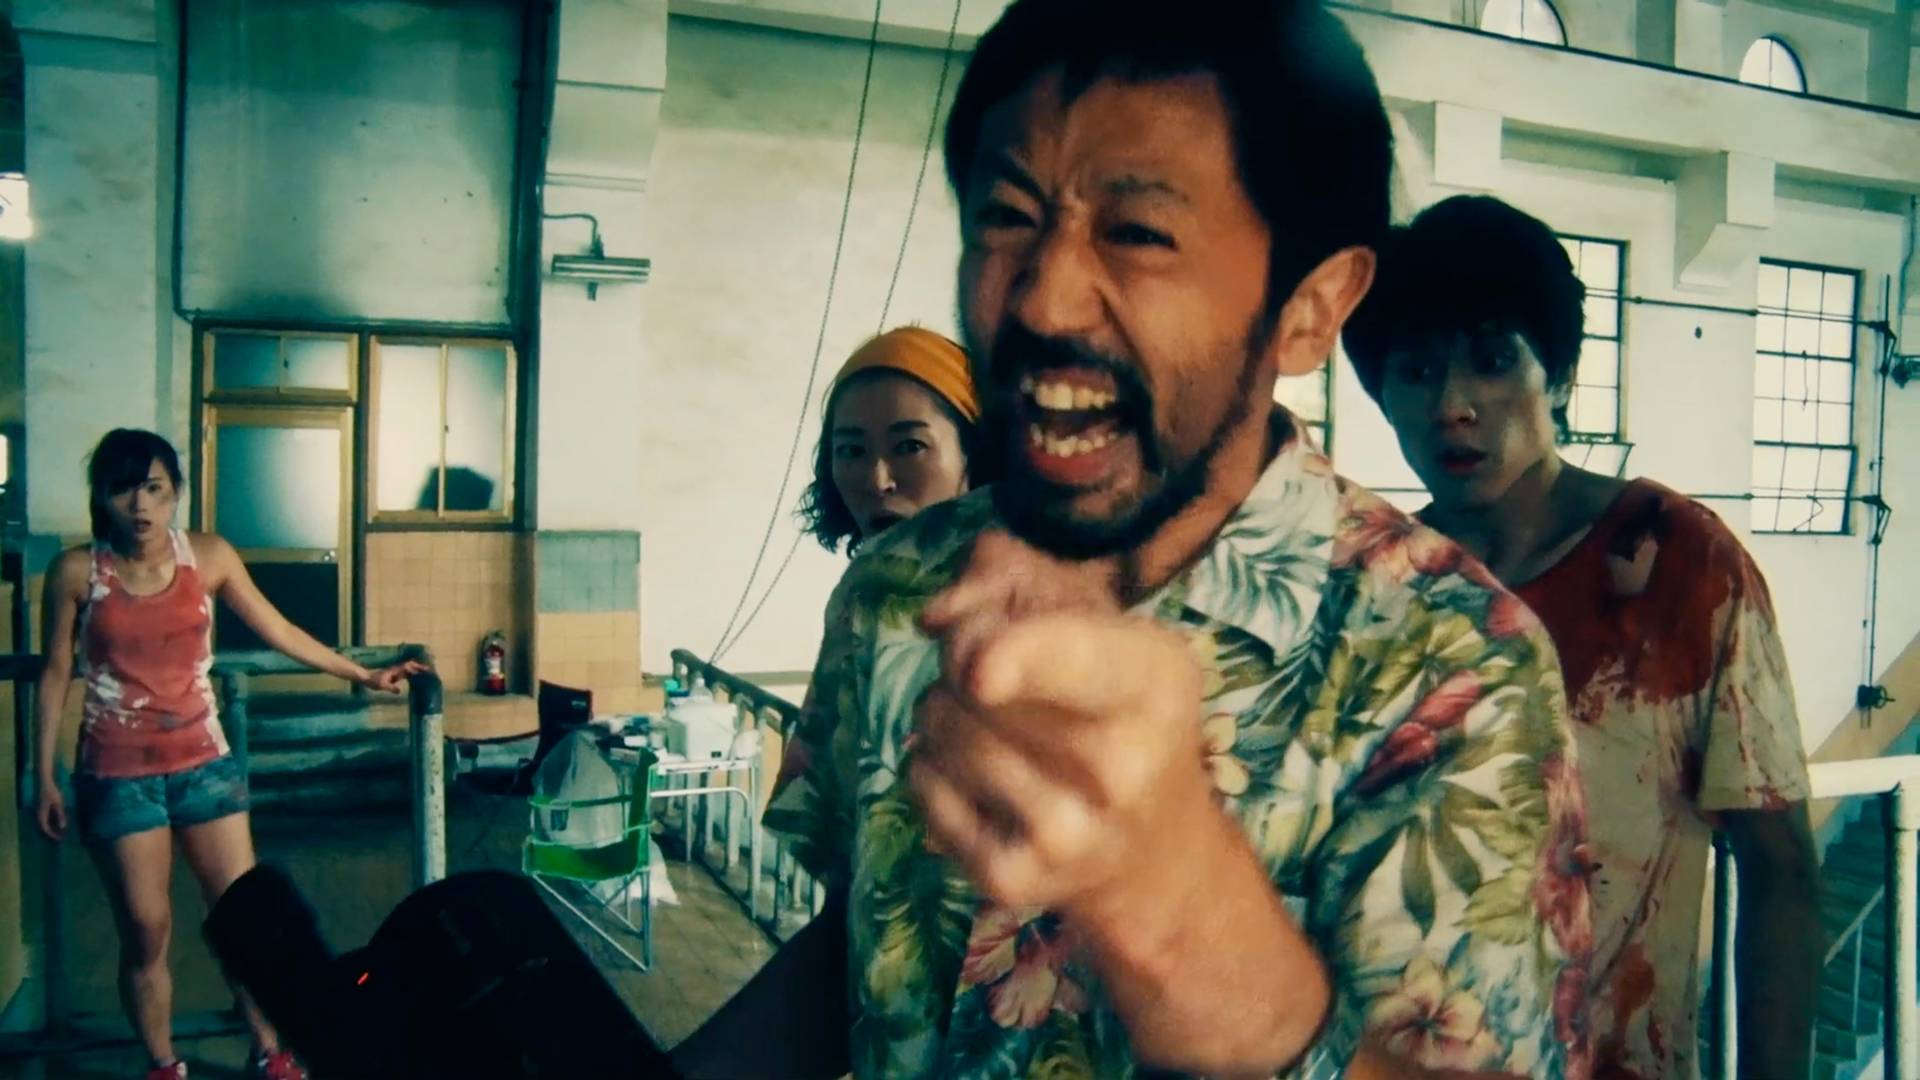 Surprise hit: 'One Cut of the Dead' was forecast to take just 5,000 admissions when it was released, but ended with more than 2 million. | © ENBU SEMINAR